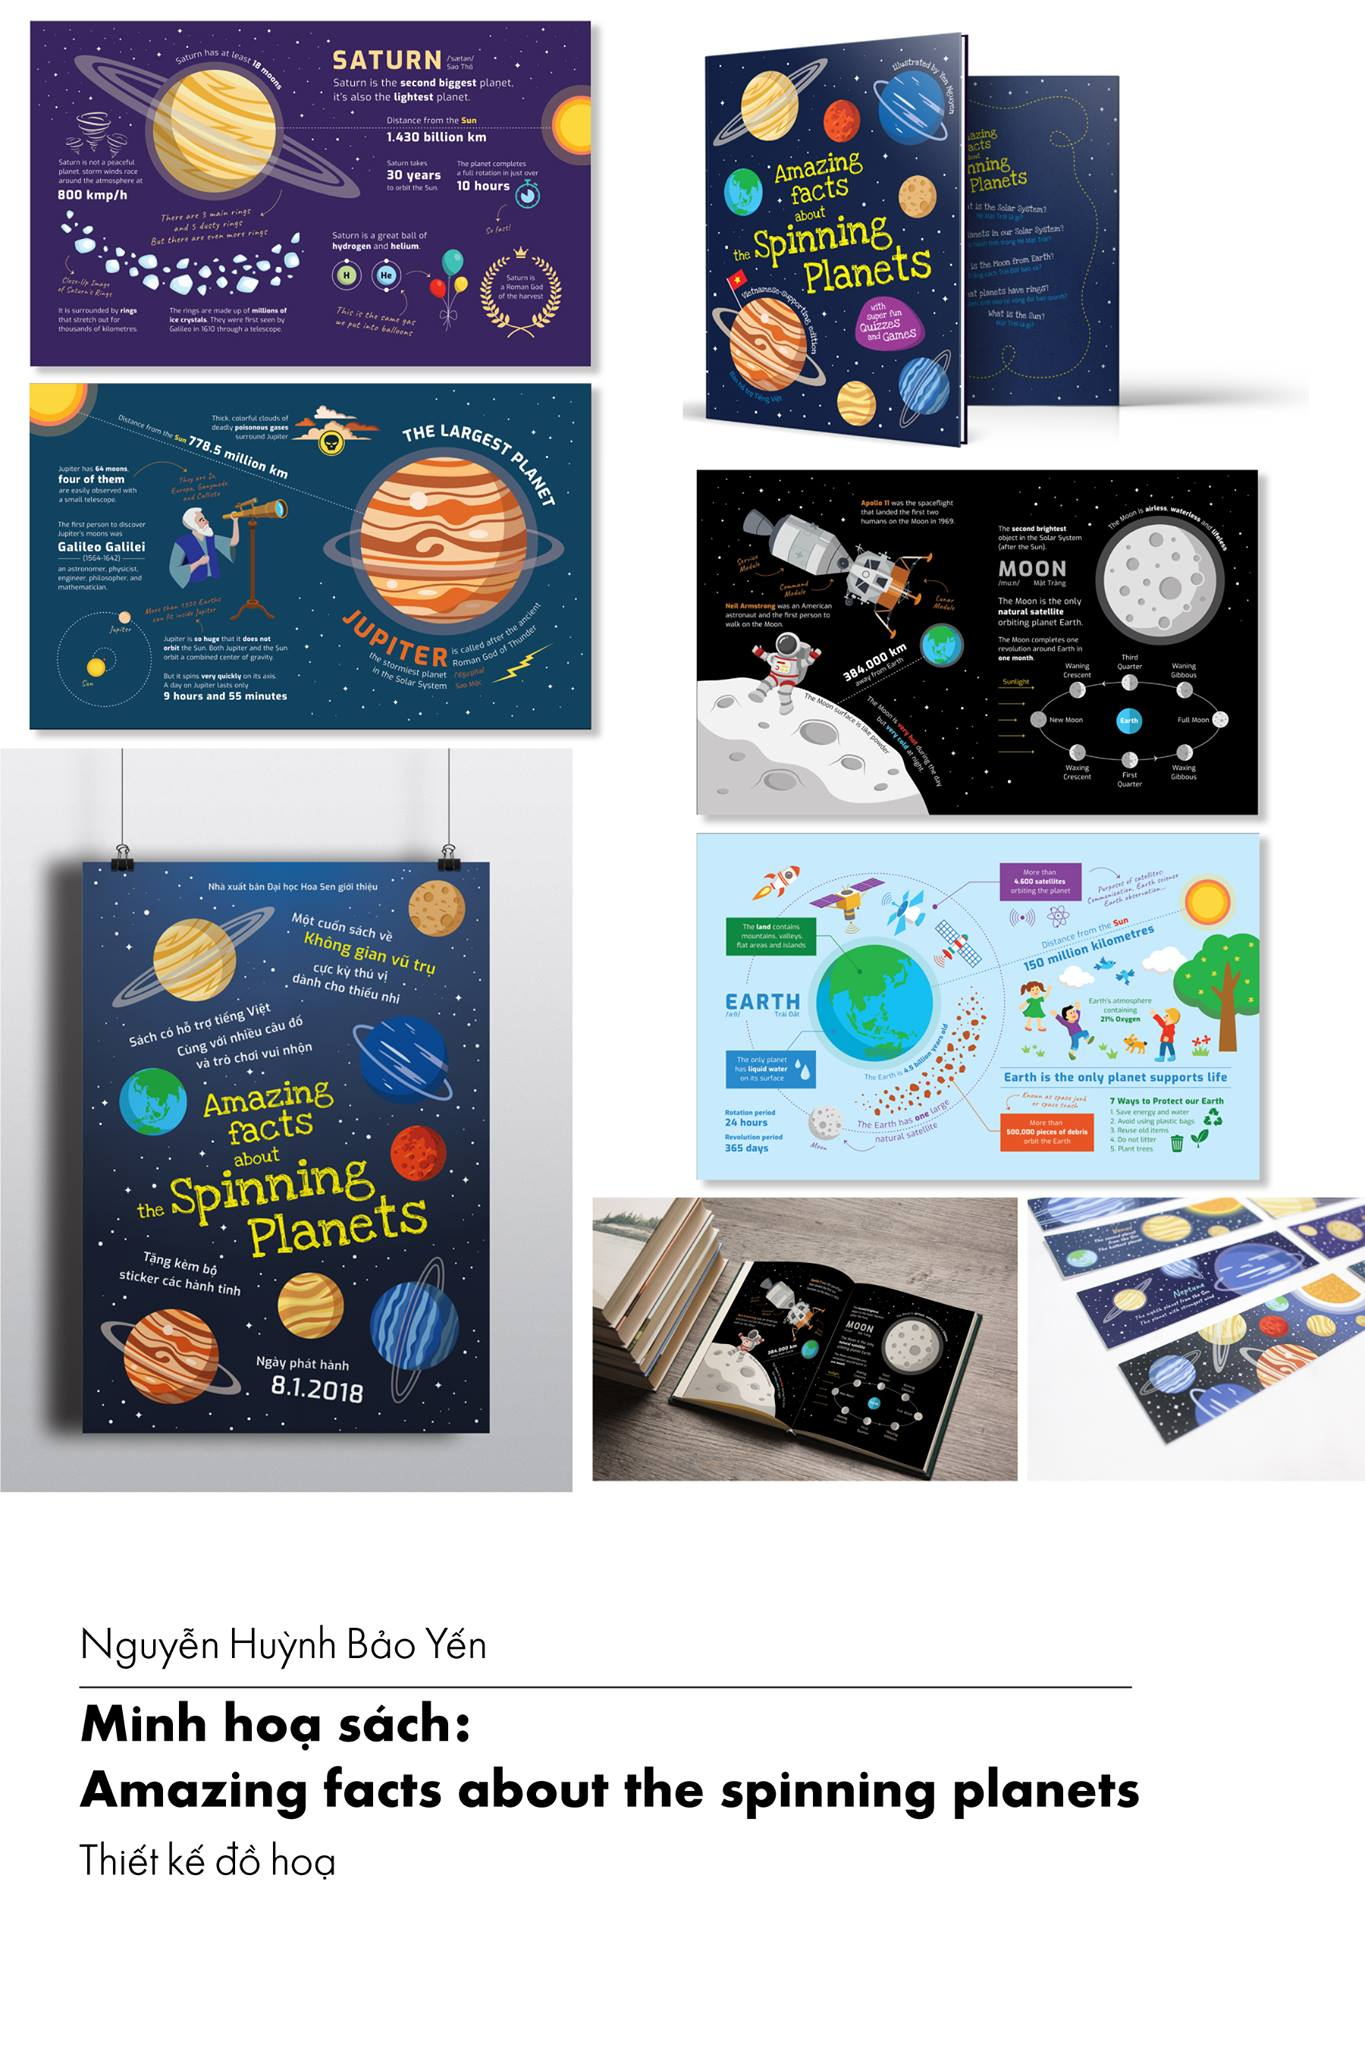 nguyen huynh bao yen - Amazing facts about the spinning planets - dai hoc hoa sen